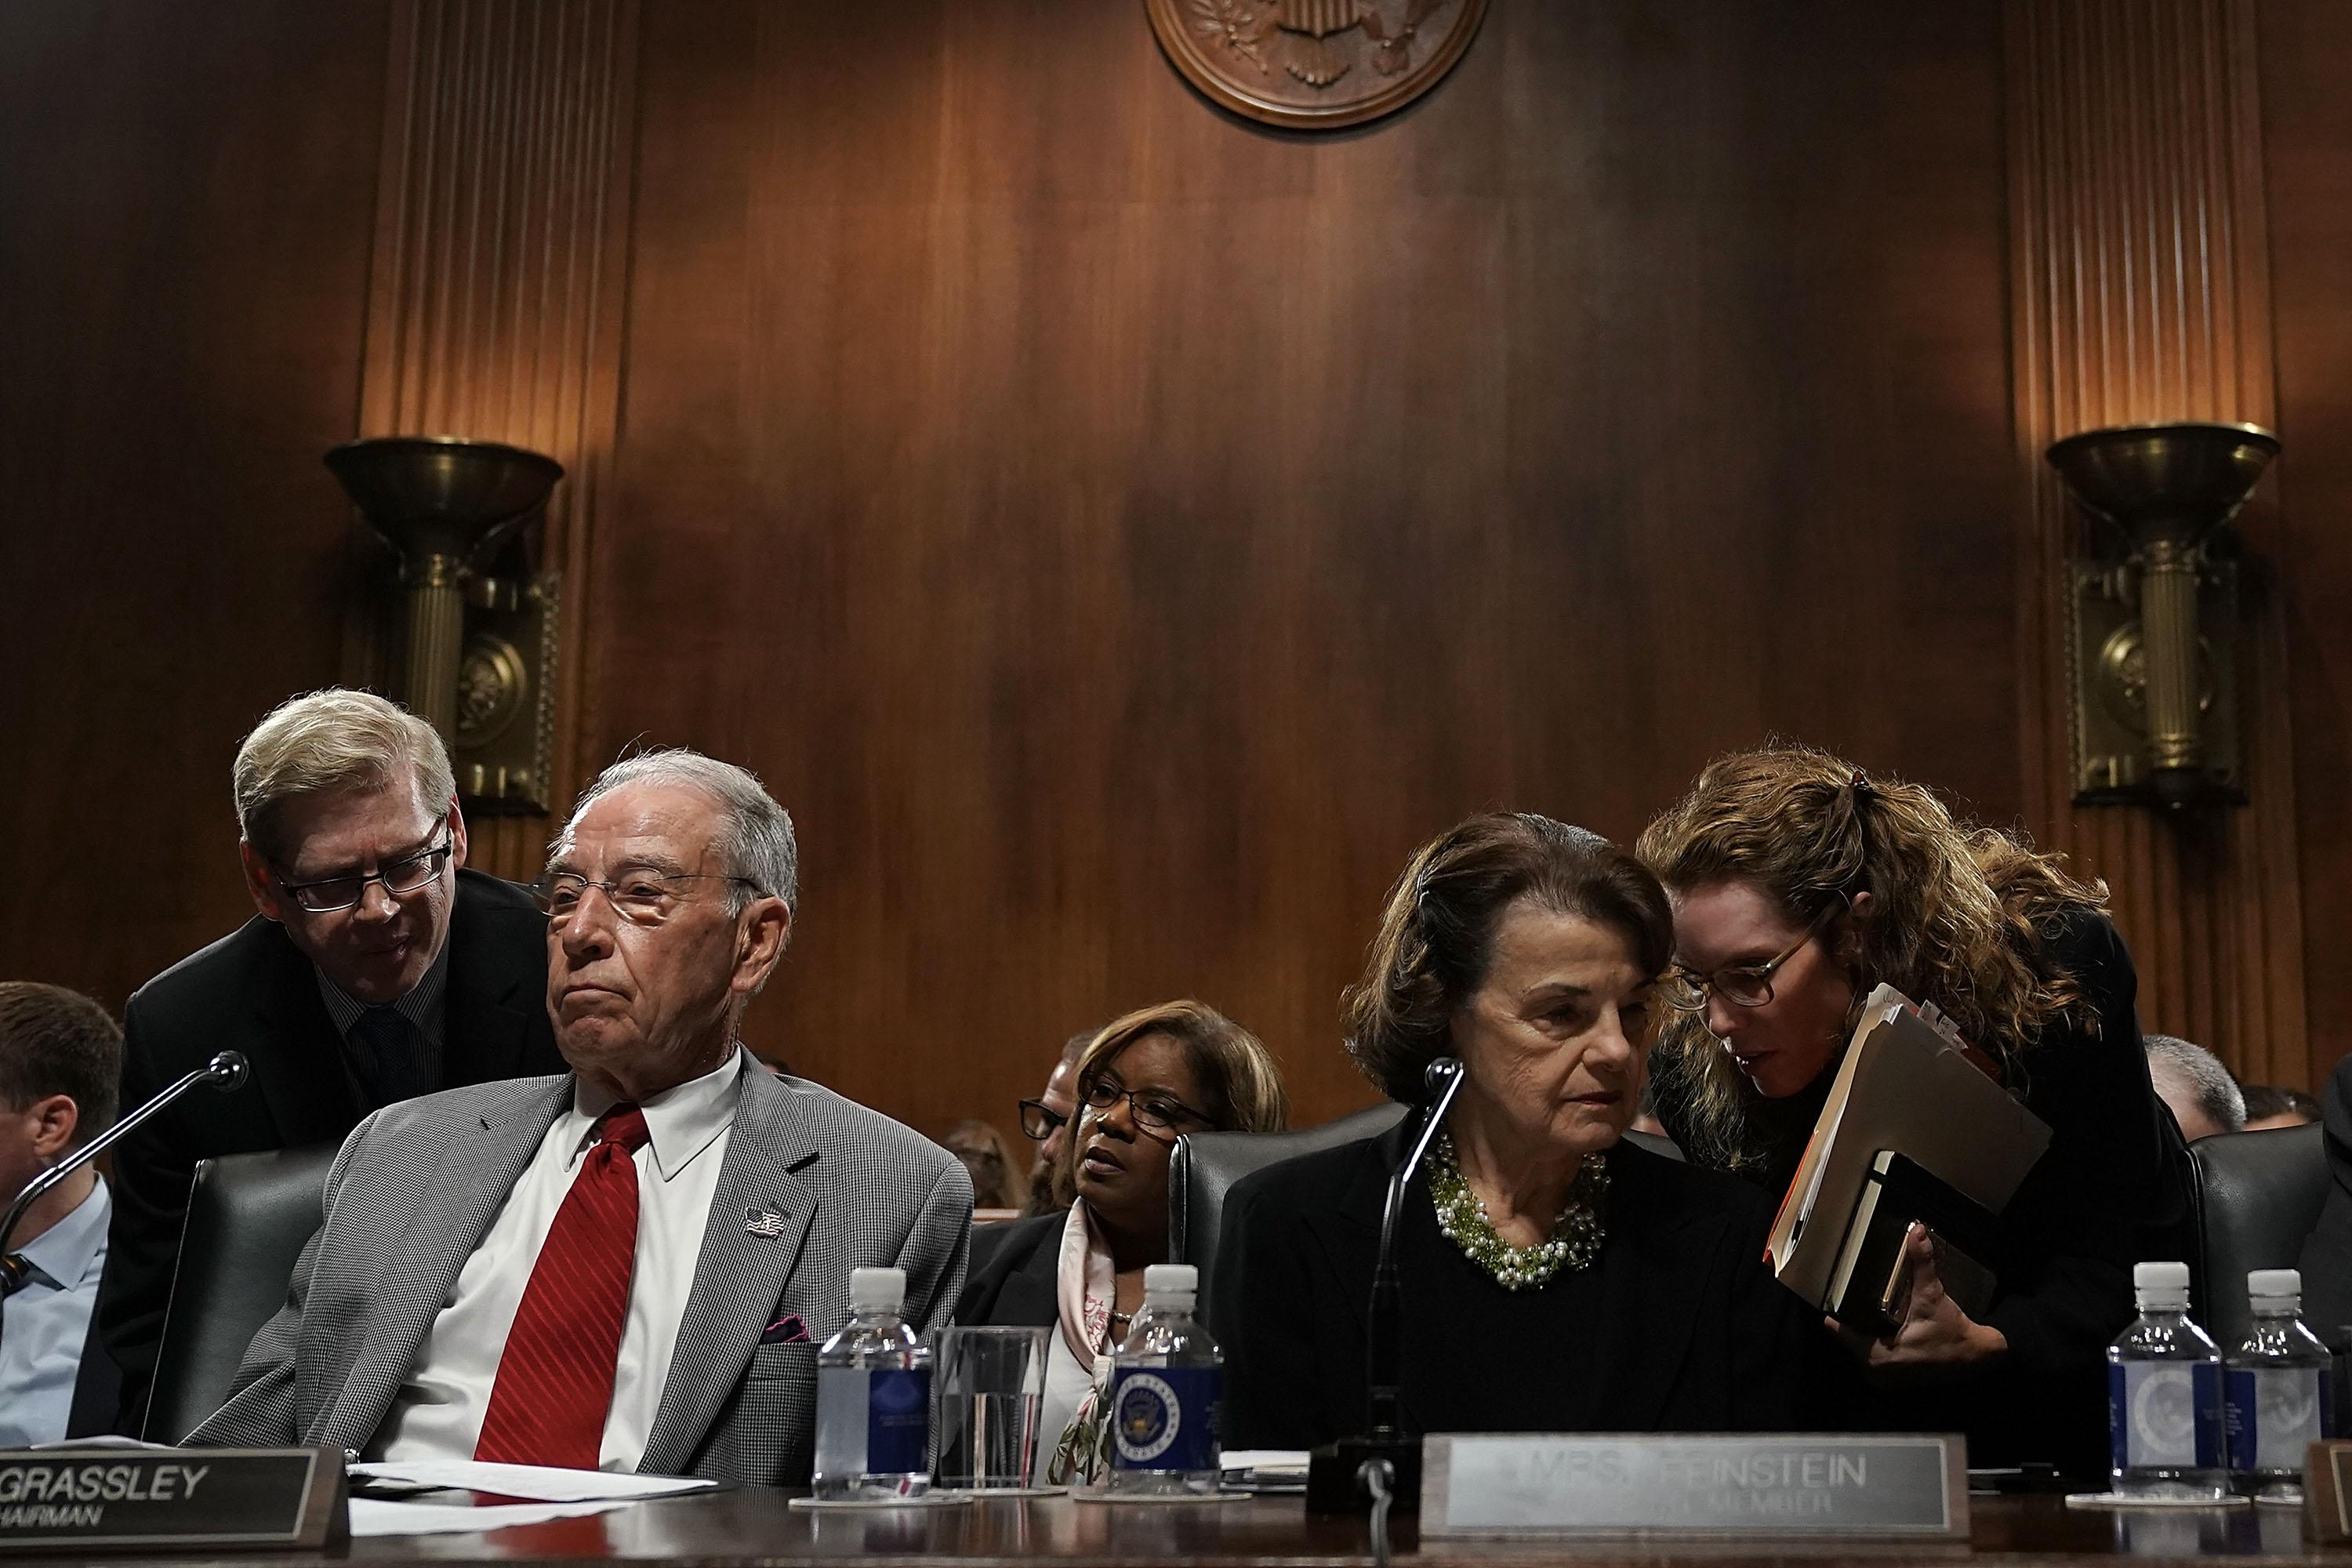 Aides lean in to talk to Sens. Chuck Grassley and Dianne Feinstein during a hearing.